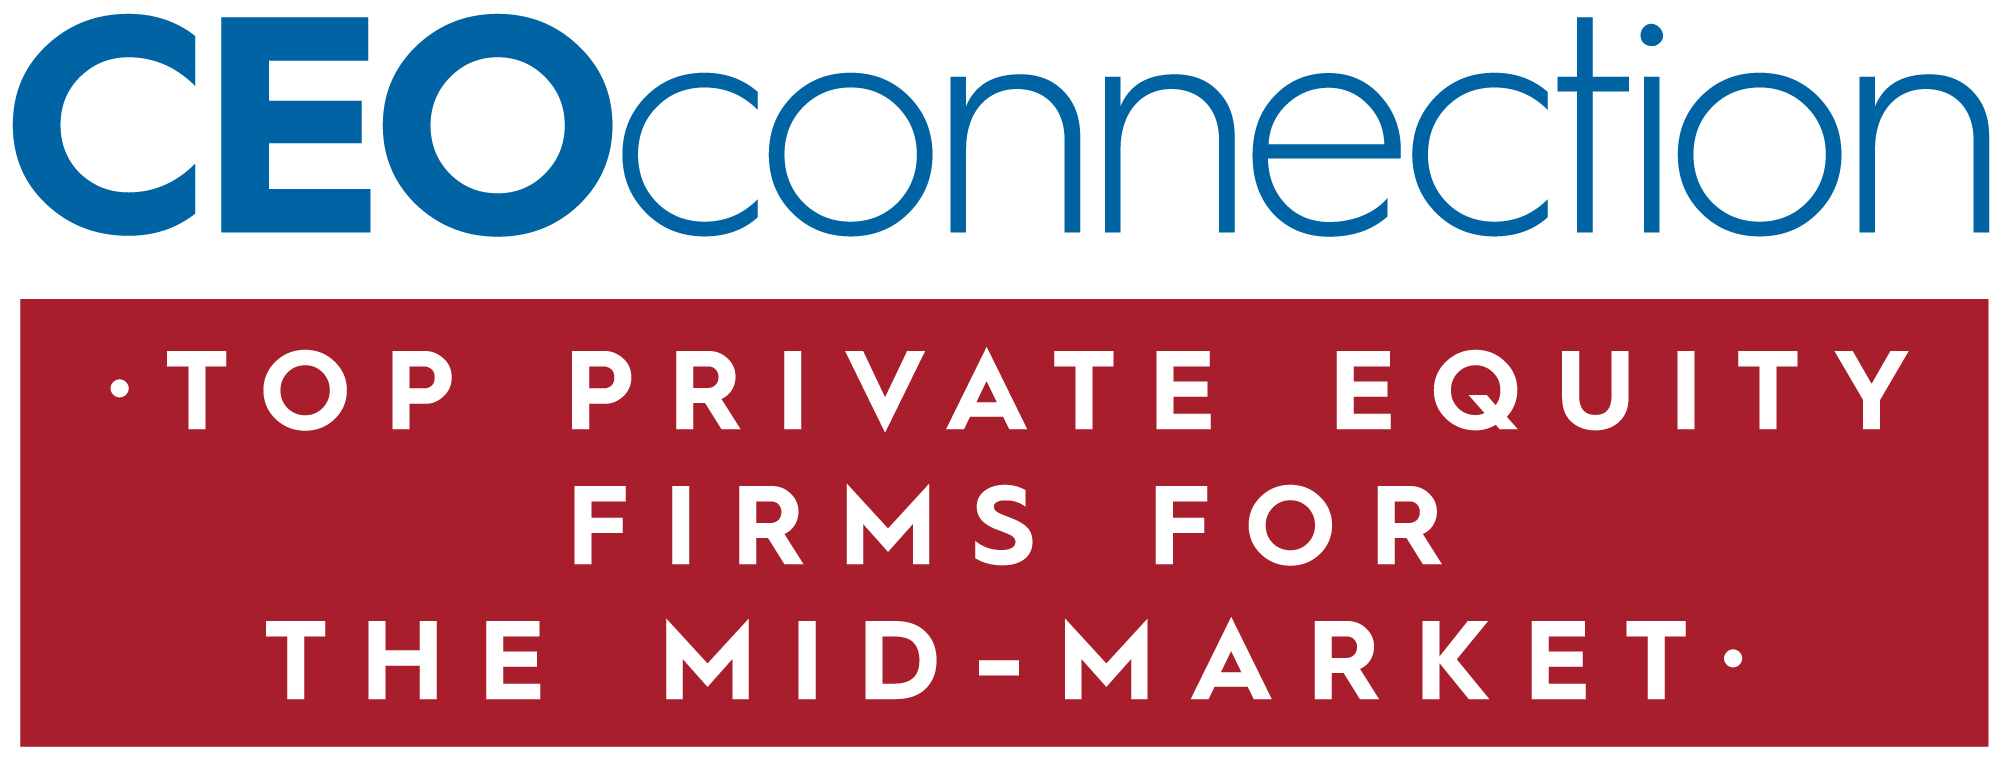 Top Private Equity Firms for the Mid-Market | CEO Connection